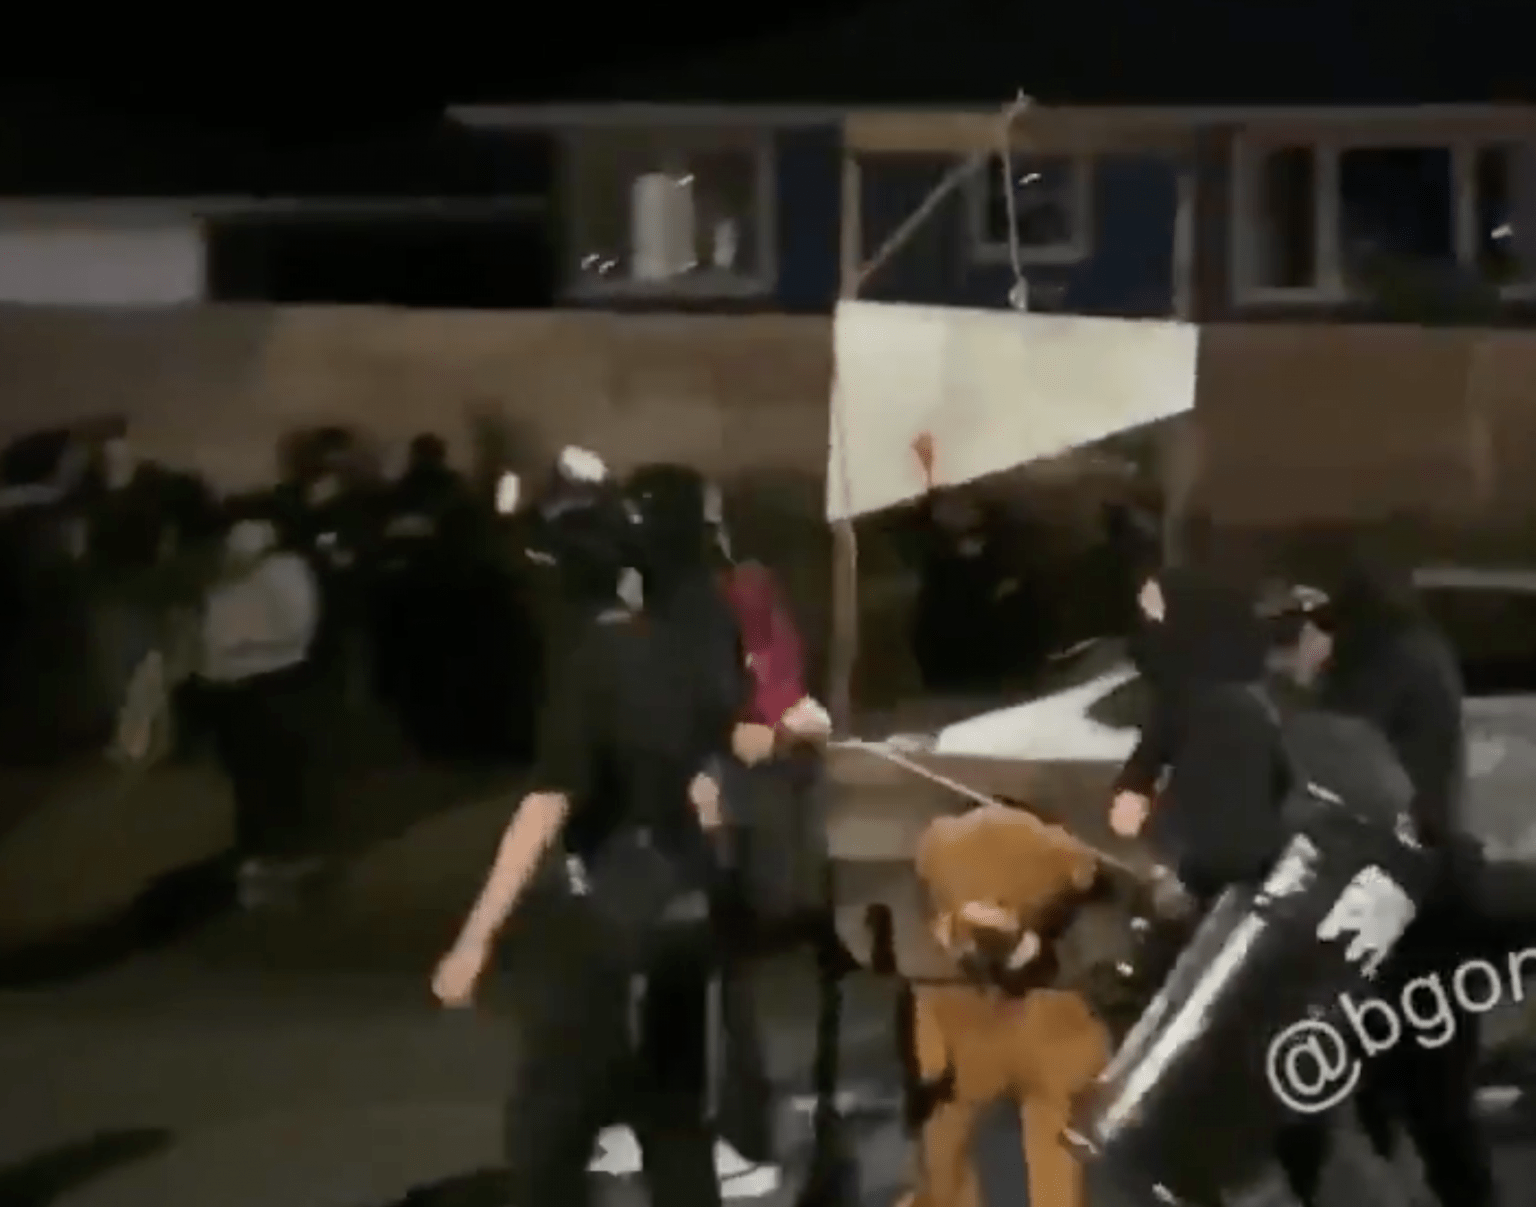 Antifa brings guillotine into Portland residential neighborhood, burns American flags: 'Get in the f-ing streets!'